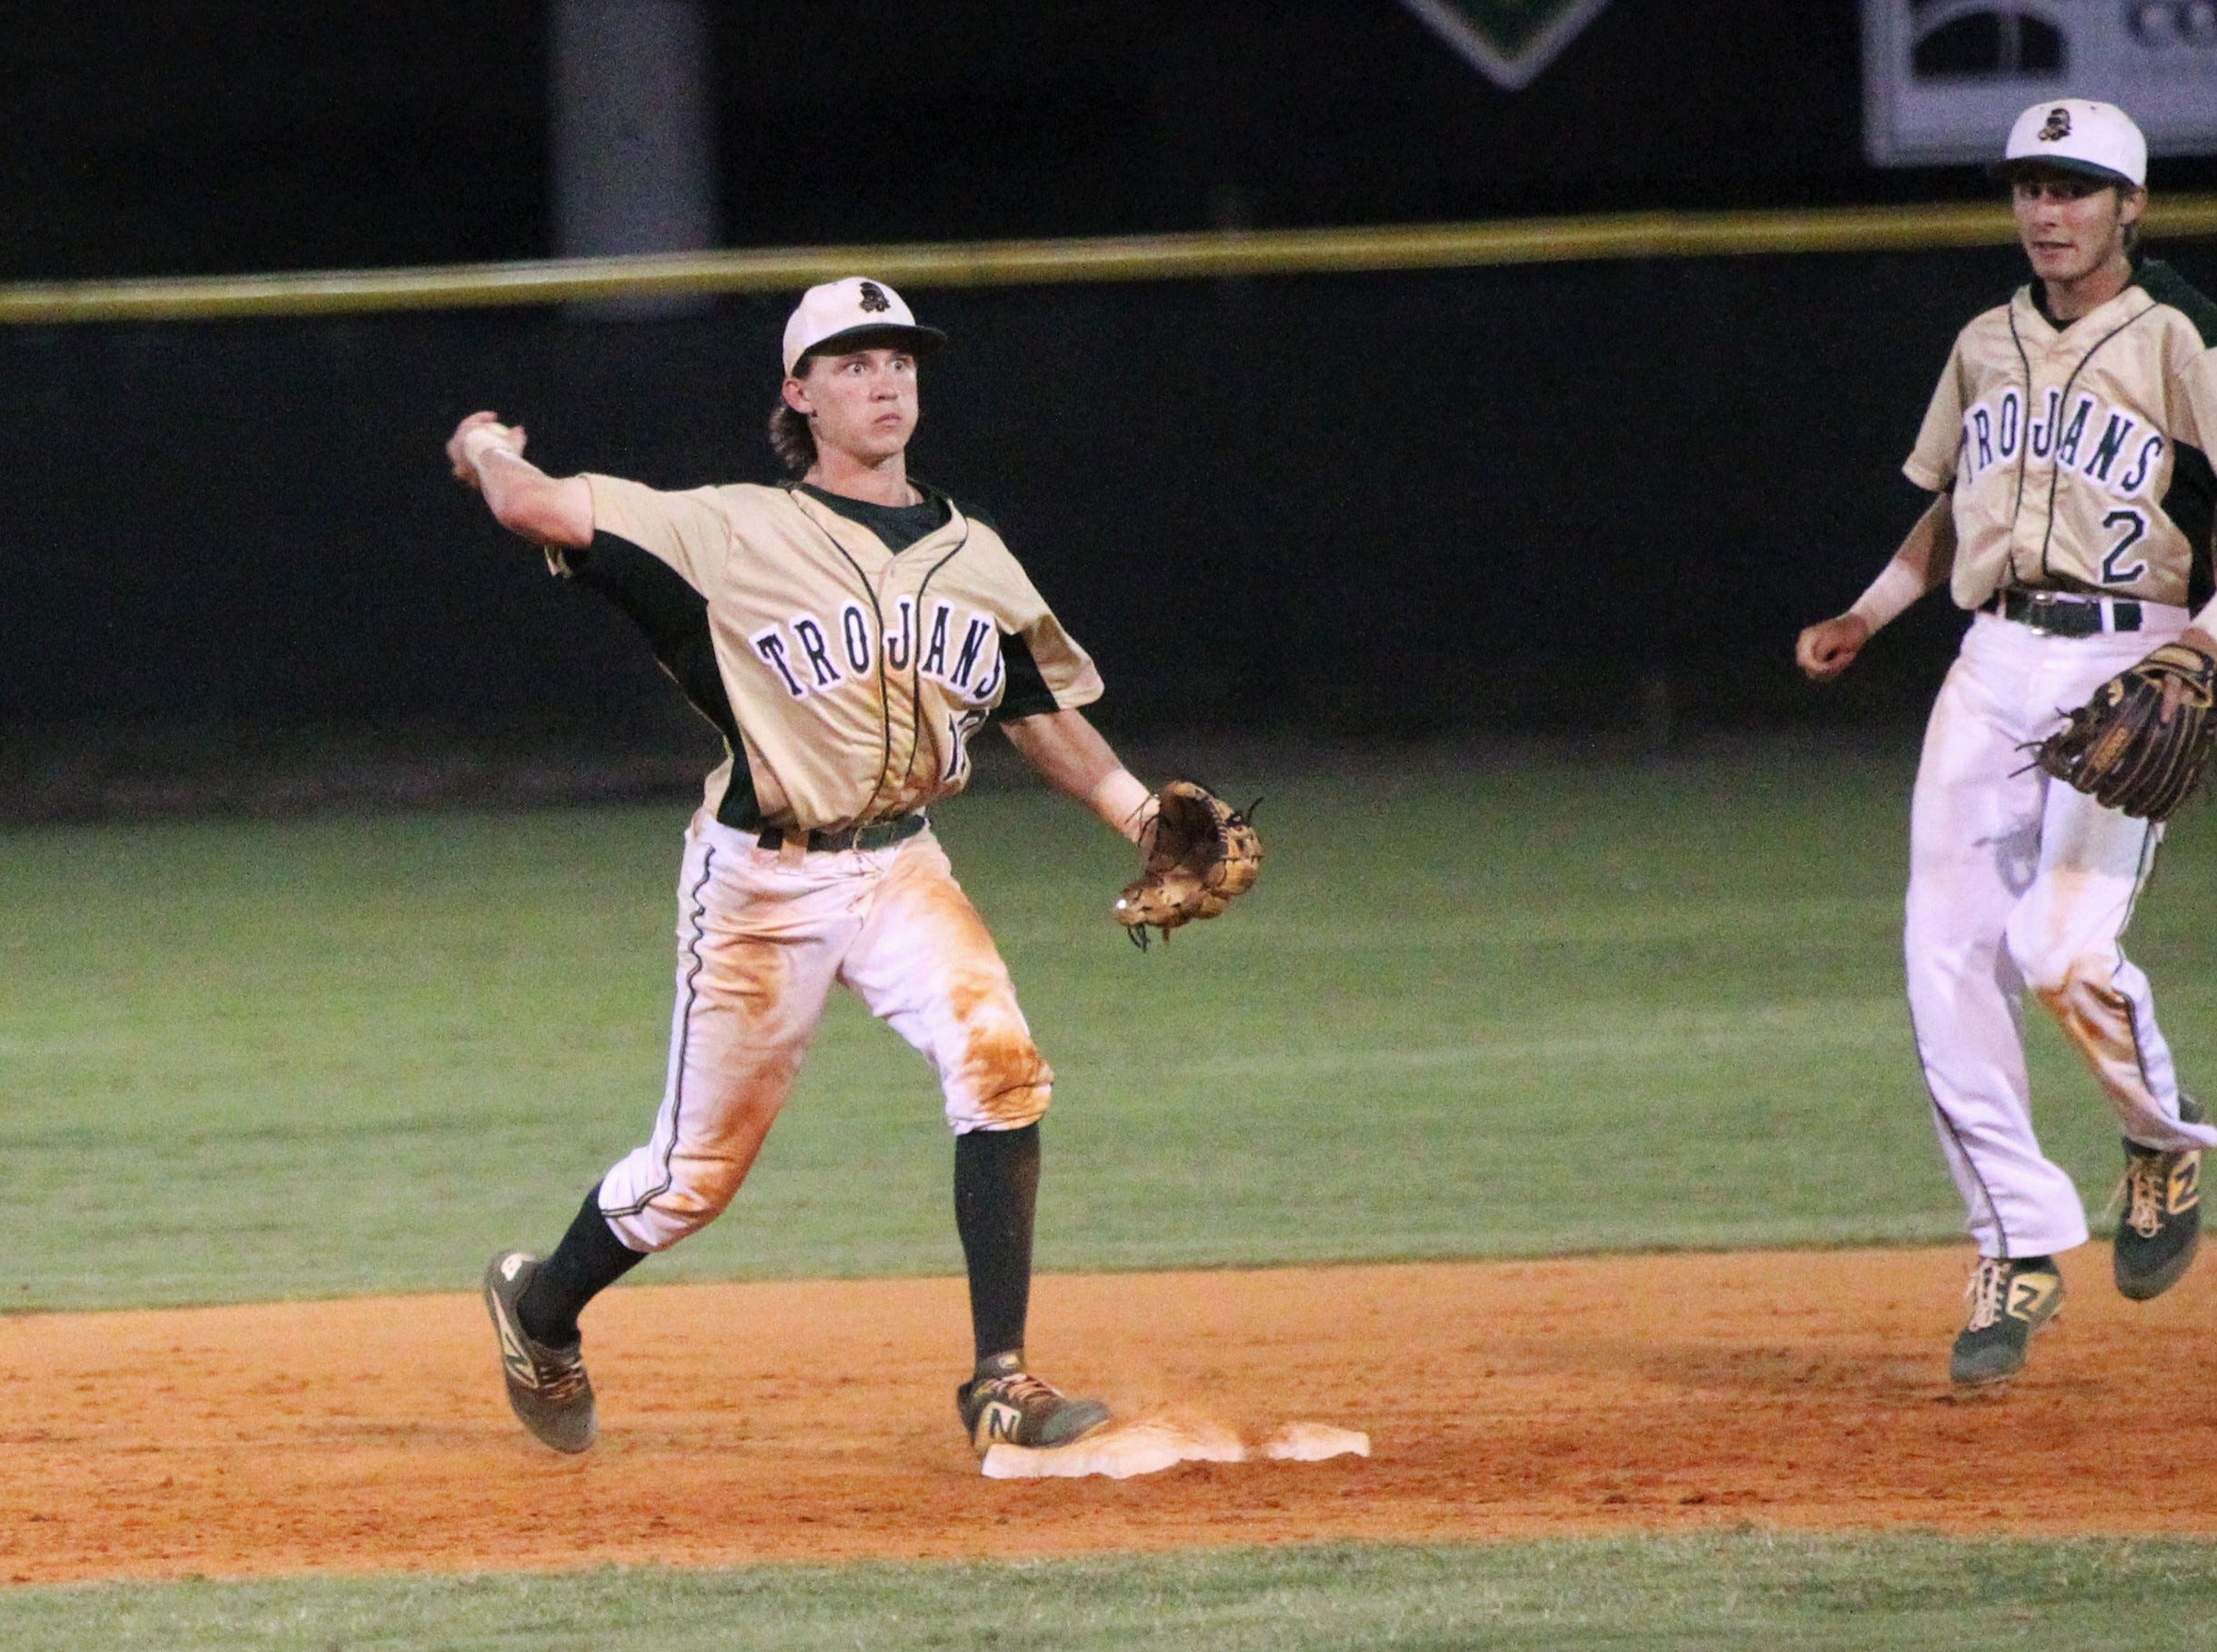 Lincoln shortstop Nick Standridge steps on second and fires to first for a double play as Lincoln baseball beat Chiles 5-4  in 10 innings during a District 2-8A championship game on Thursday, May 9, 2019.